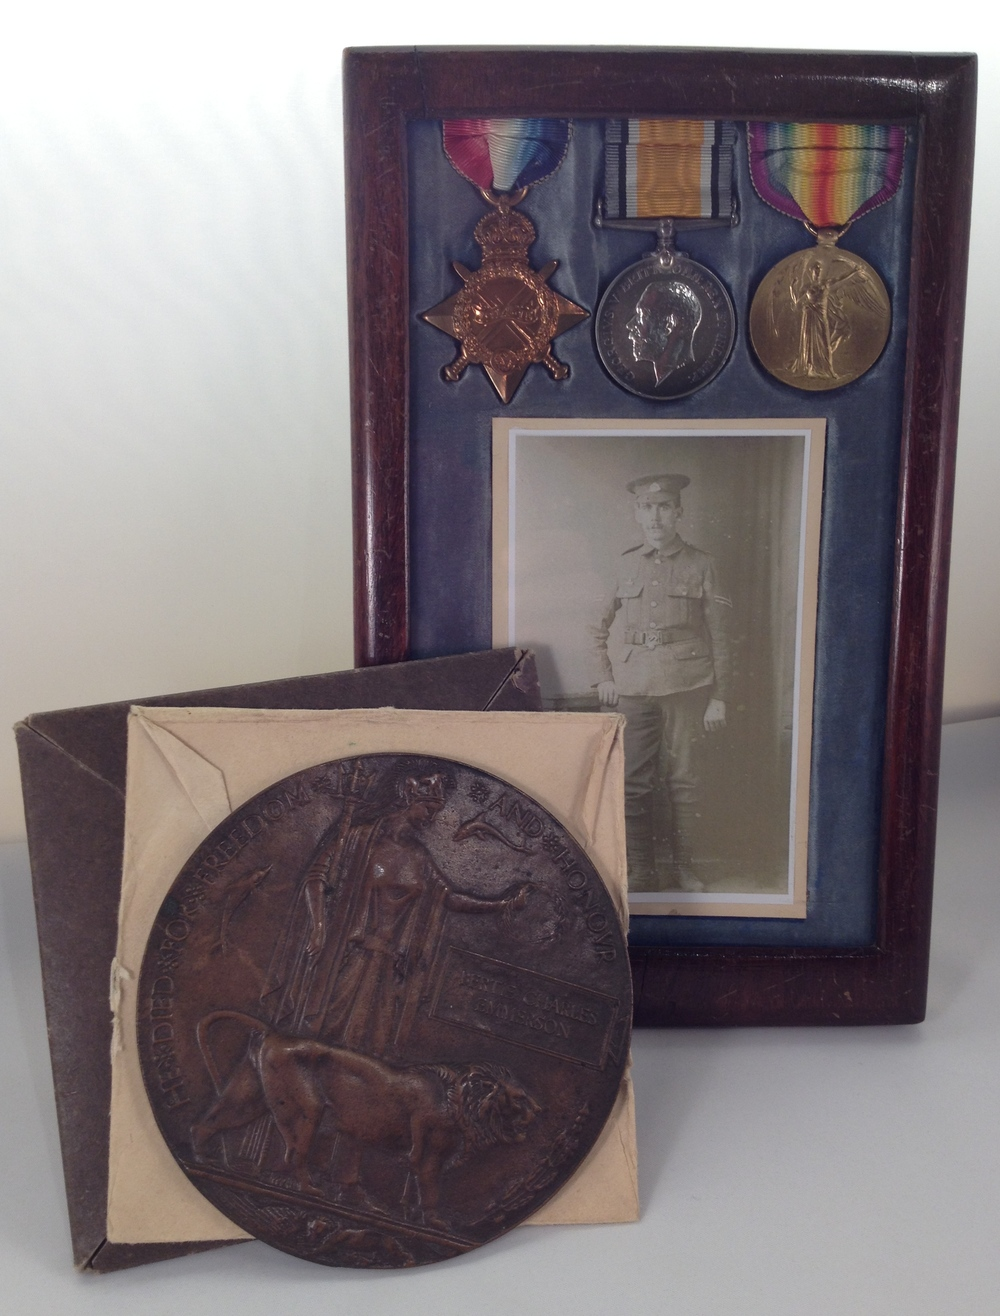 B Emmerson medals & penny 1.jpg